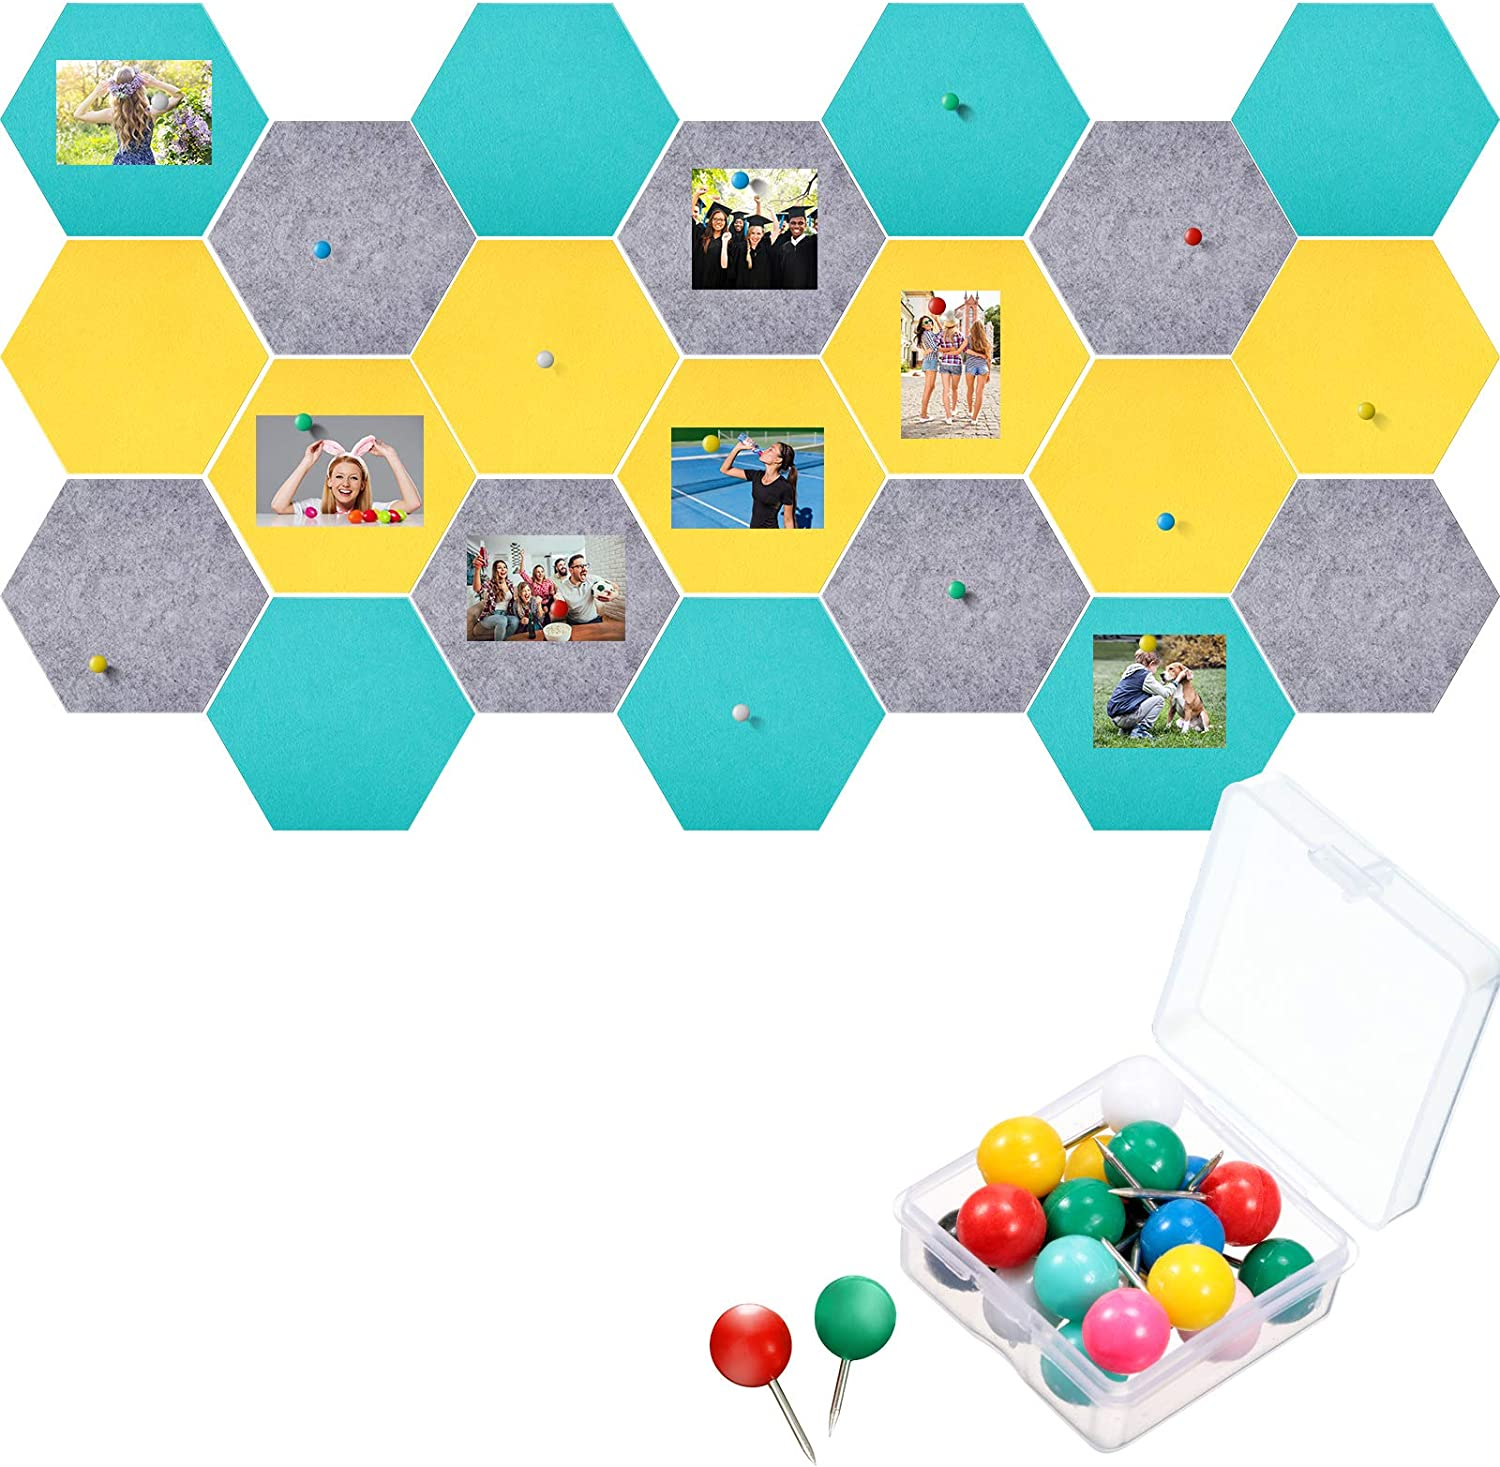 21 Pieces Pin Board Hexagon Felt Board Tiles Bulletin Board Memo Board Notice Board with 40 Pieces Push Pins for Home Office Classroom Wall Decor 5.9 x 7 Inches/ 15 x 17.7 cm (Grey, Yellow, Turquoise)